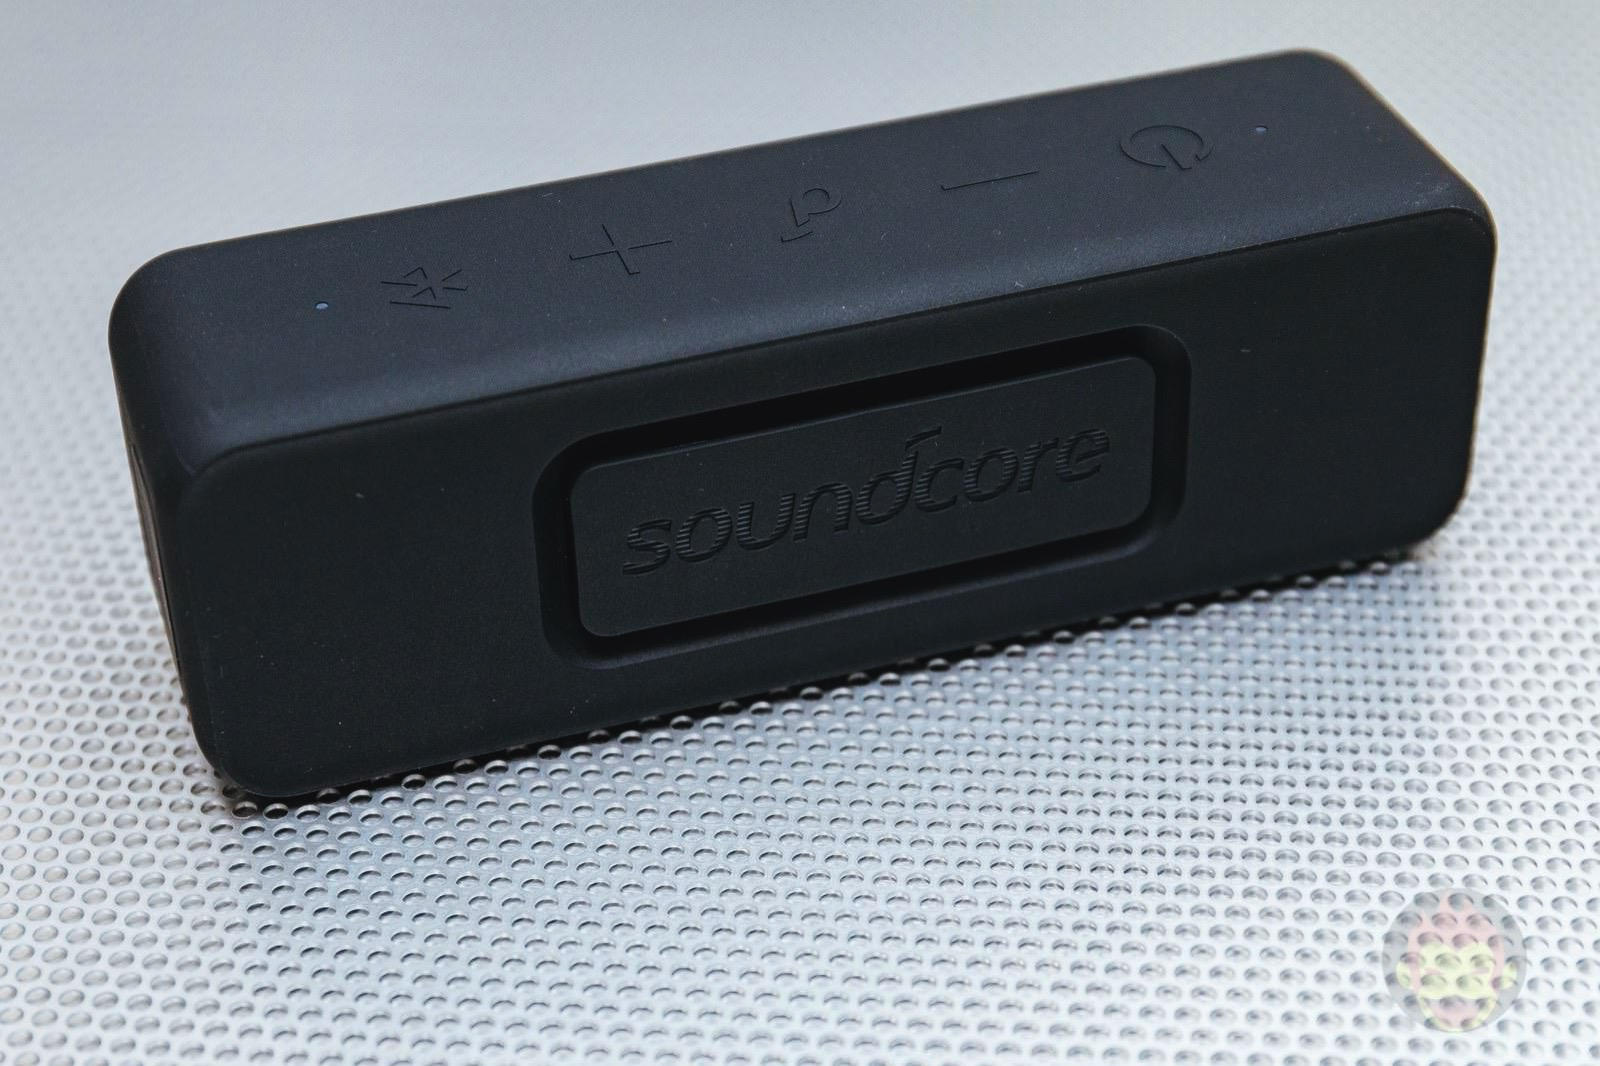 Anker-Soundcore-Motion-B-Wireless-Speaker-03.jpg